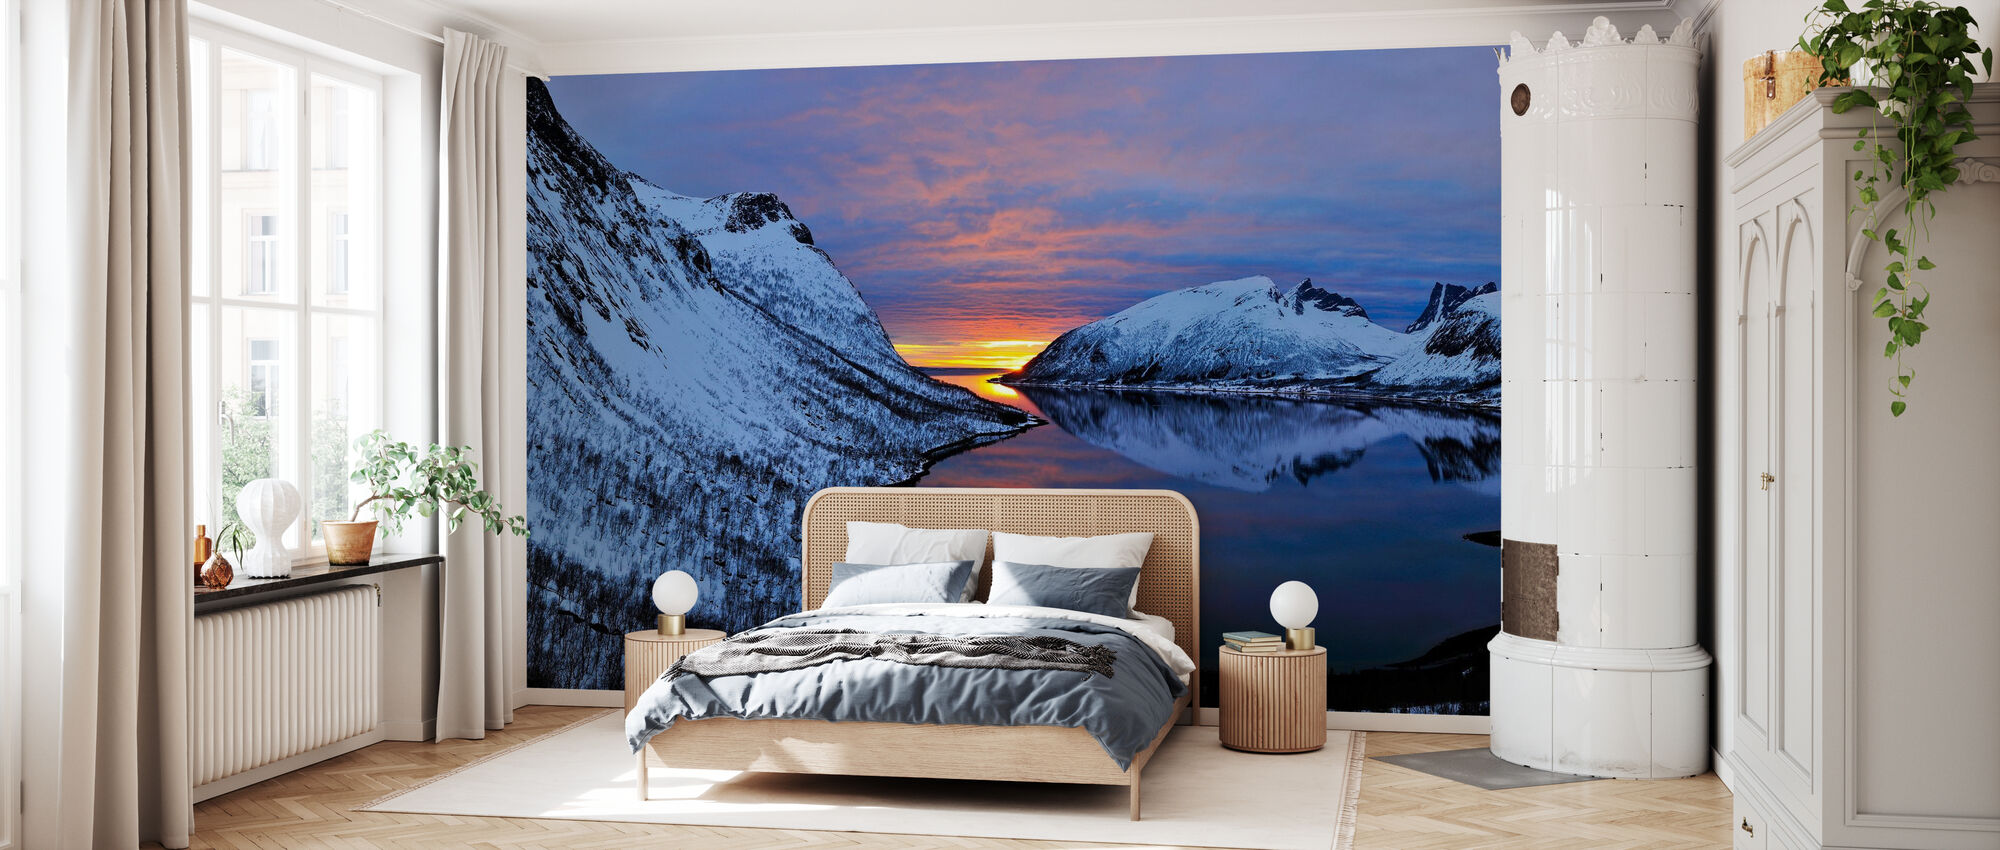 Golden Sunset over Troms, Noorwegen - Behang - Slaapkamer